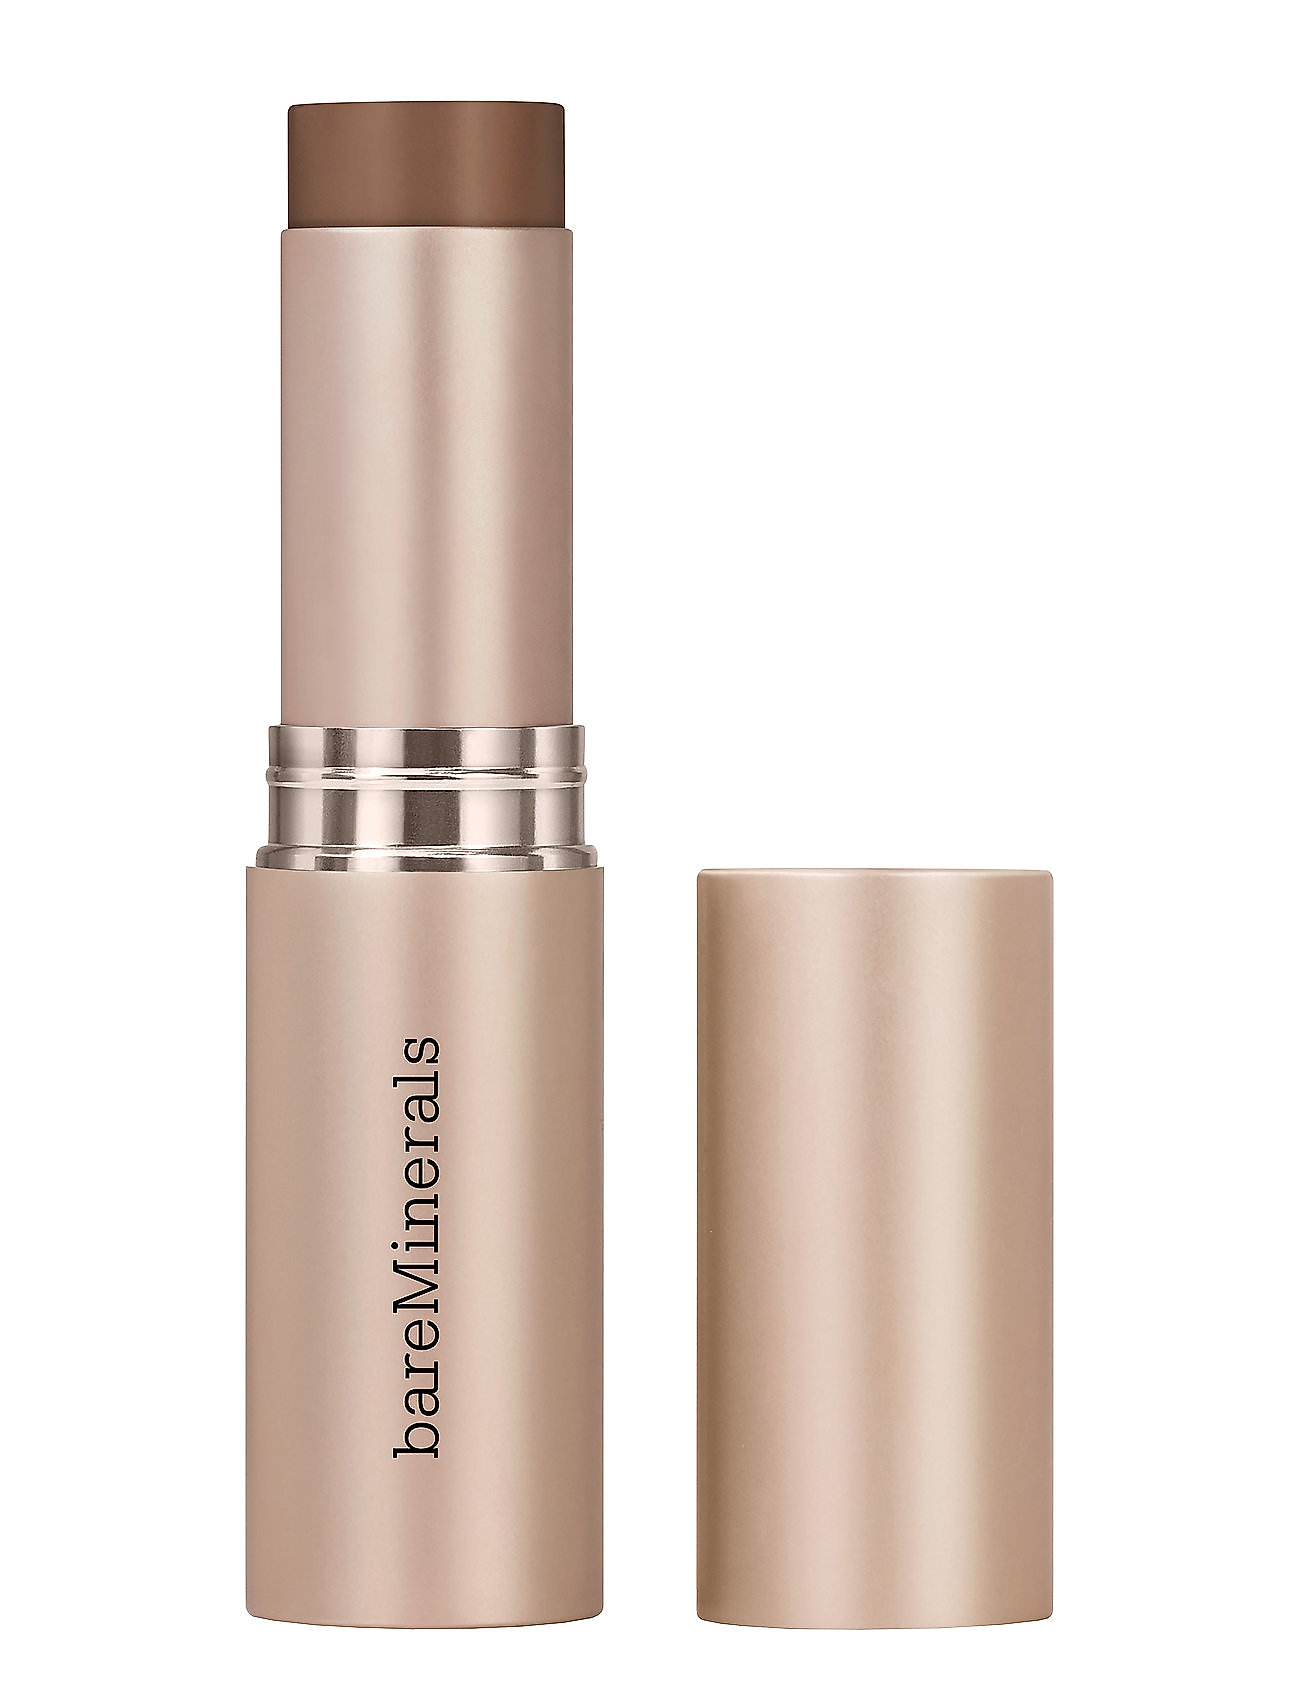 Image of Complexion Rescue Hydrating Foundation Stick Spf 25 Foundation Makeup BareMinerals (3250586917)